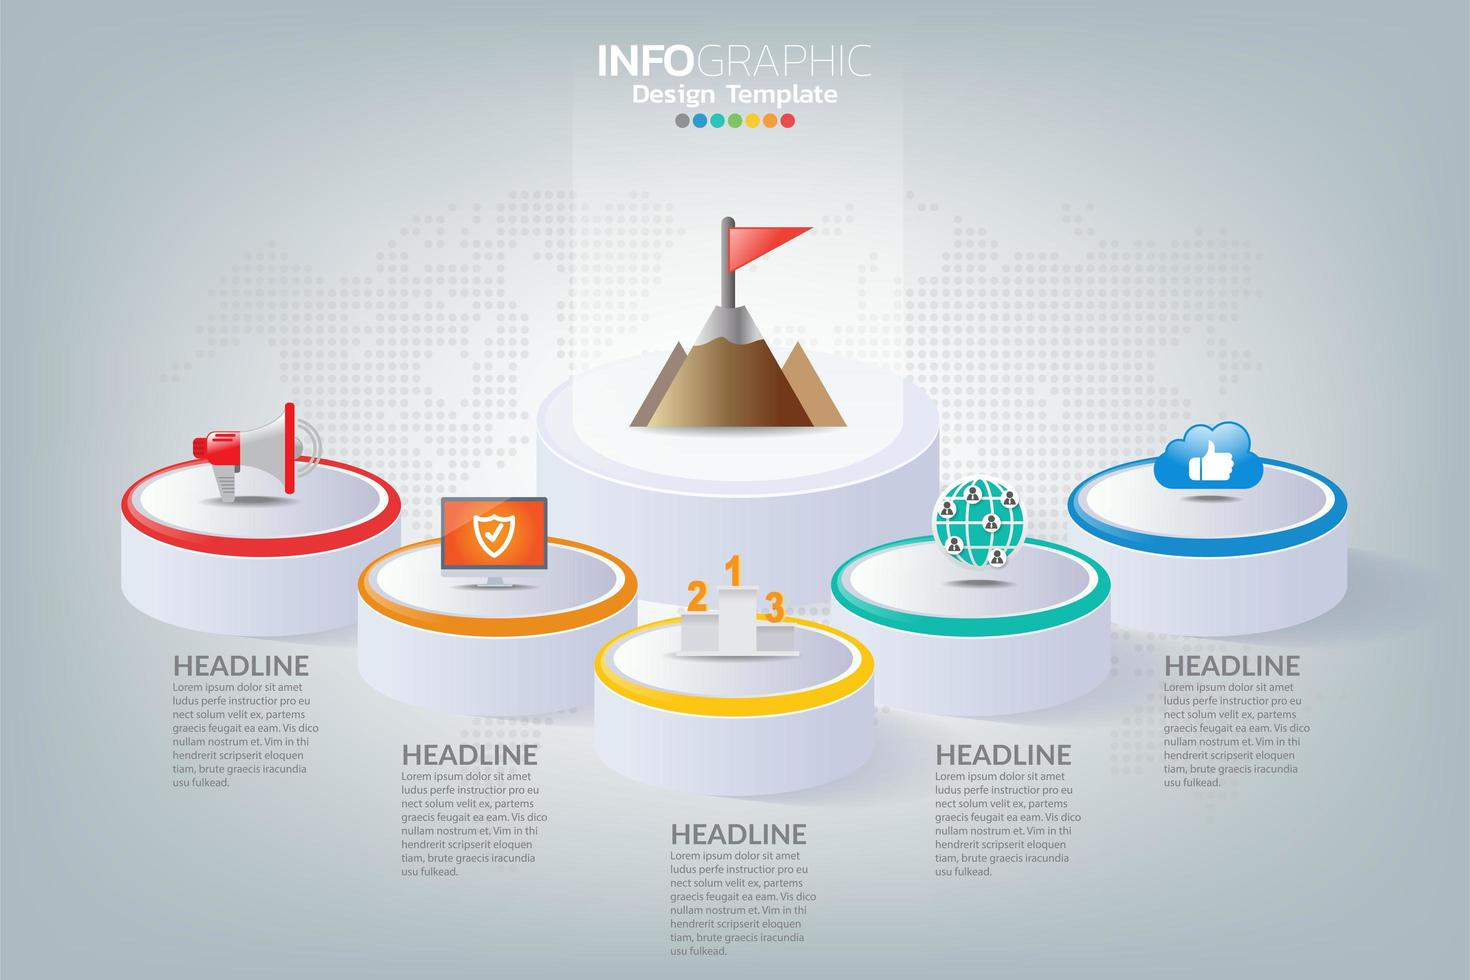 Business infographic timeline how to success with options and icons. vector